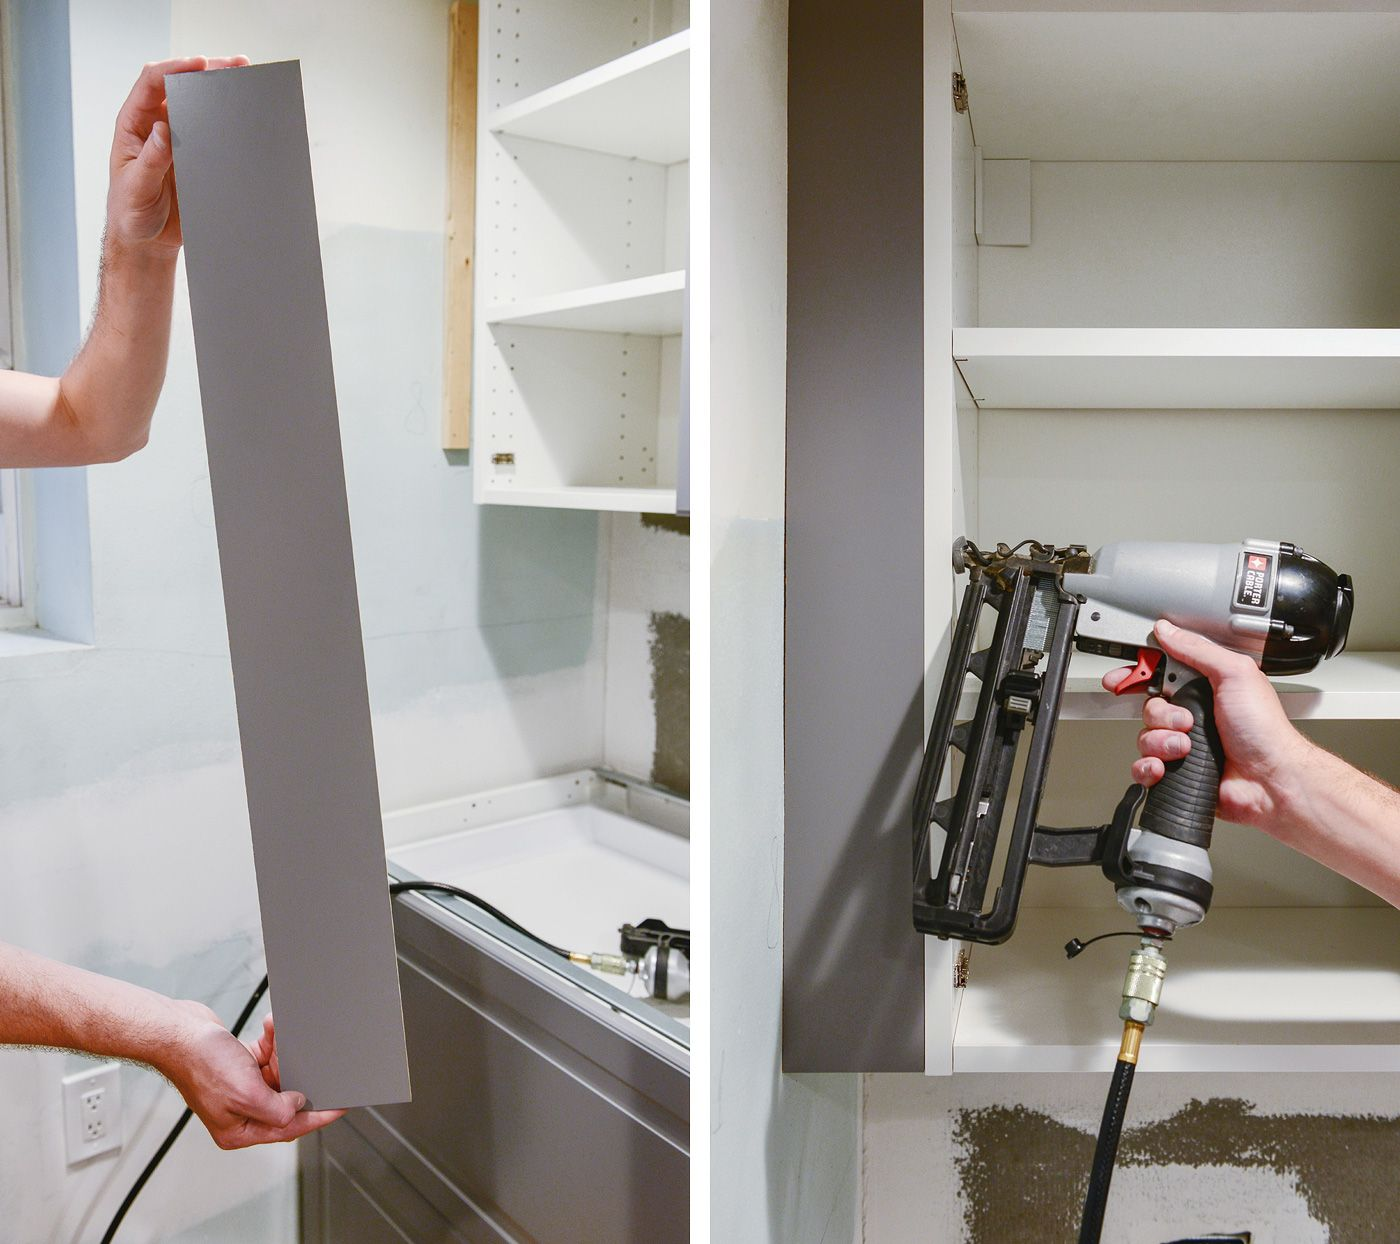 Perfecting The Imperfect In Our Ikea Kitchen Fillers Panels Toe Kicks Ikea Kitchen Ikea Kitchen Planning Ikea Kitchen Remodel